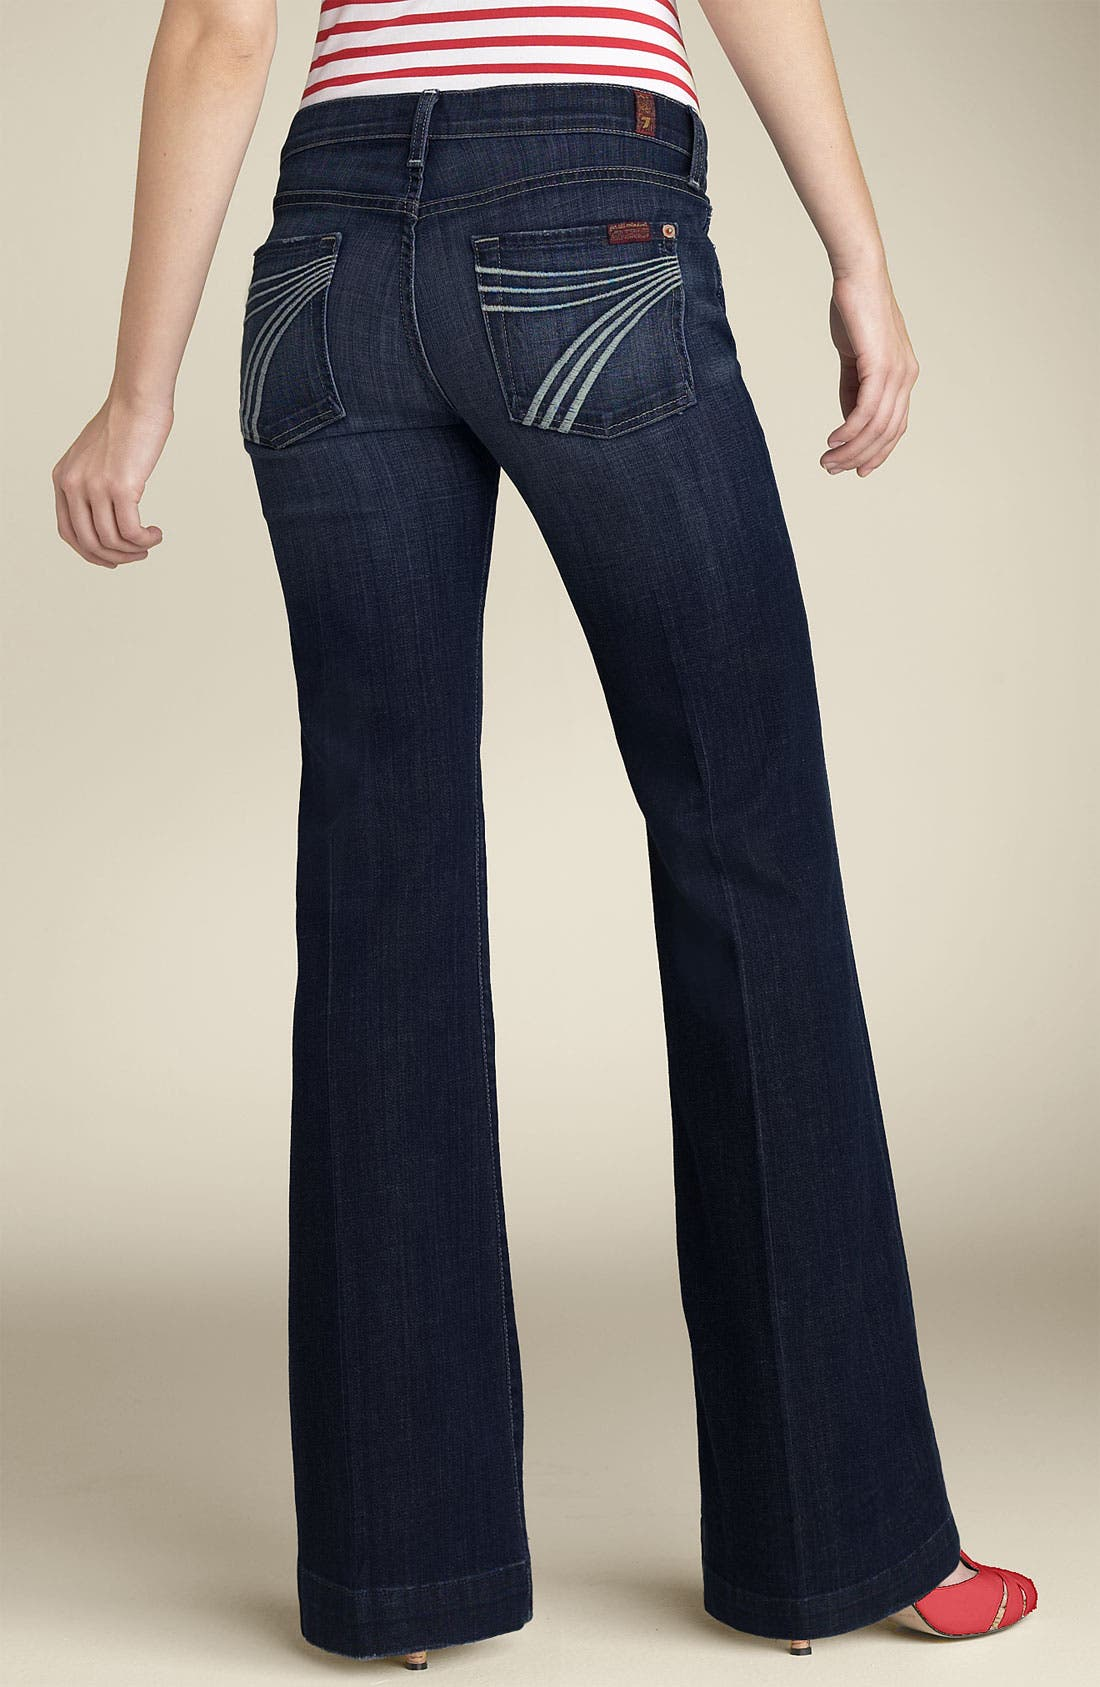 Alternate Image 1 Selected - 7 For All Mankind® 'Dojo' Stretch Trouser Jeans (Indigo Wash) (Short Inseam)